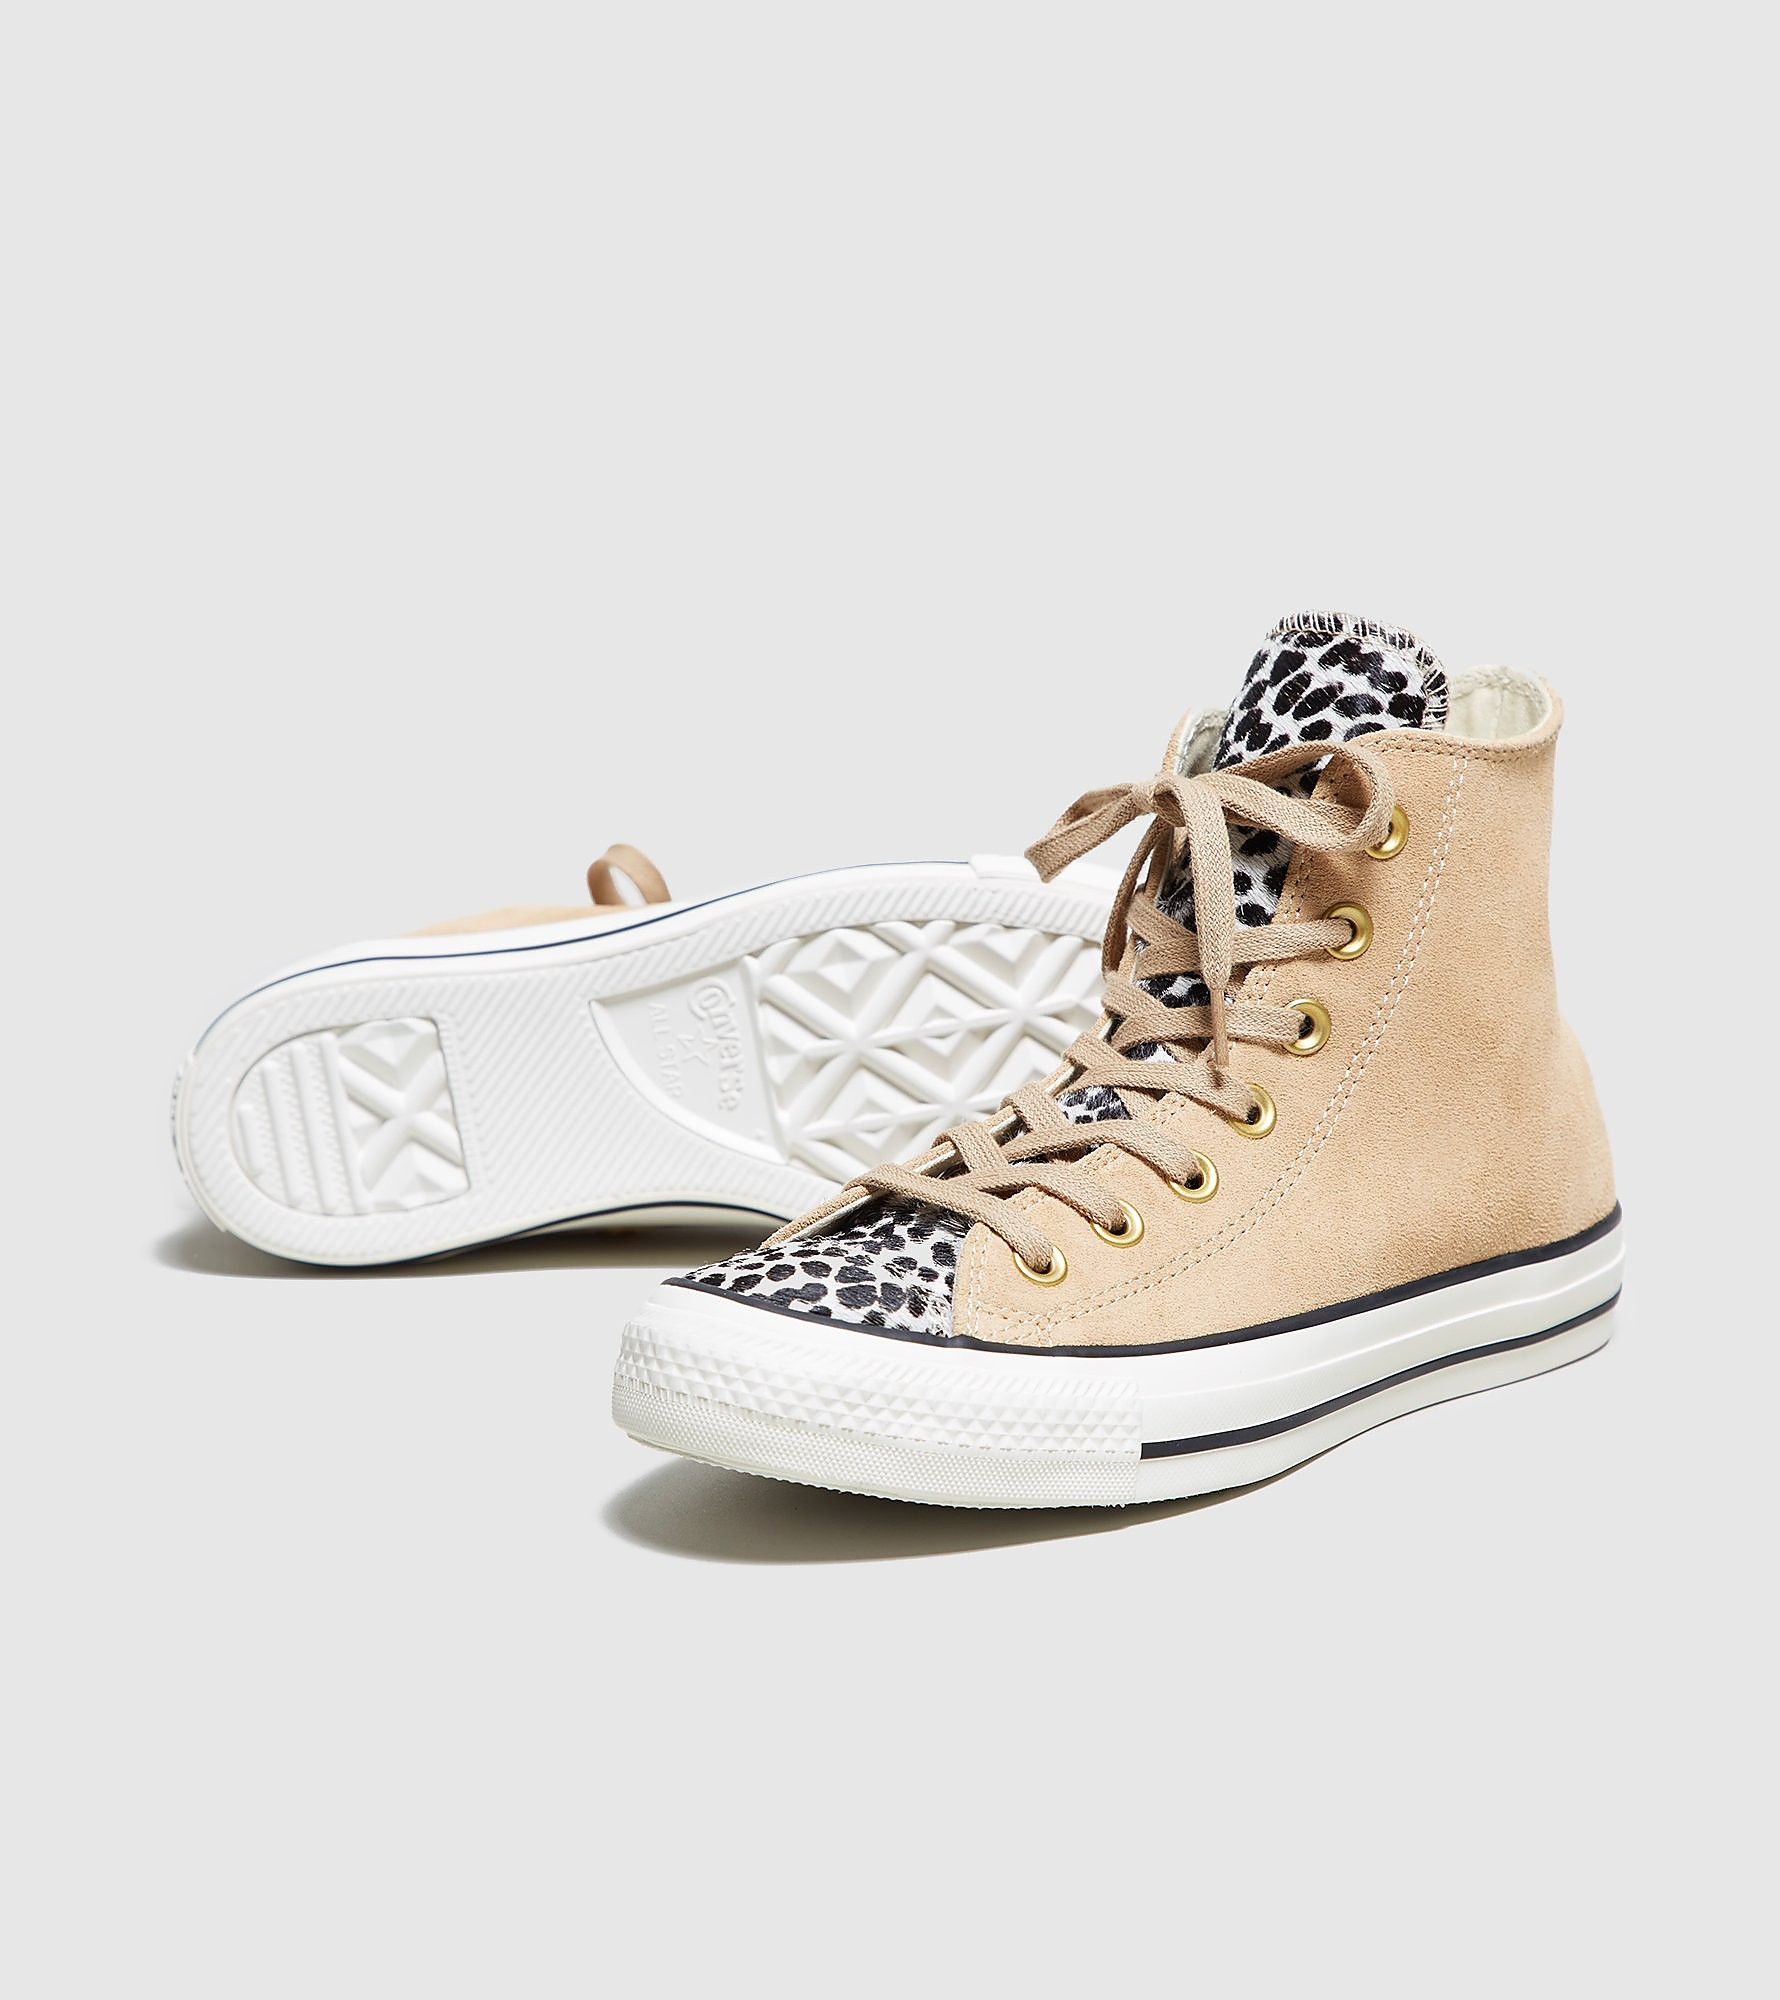 Converse 70's CL Pony Hair Hi Women's